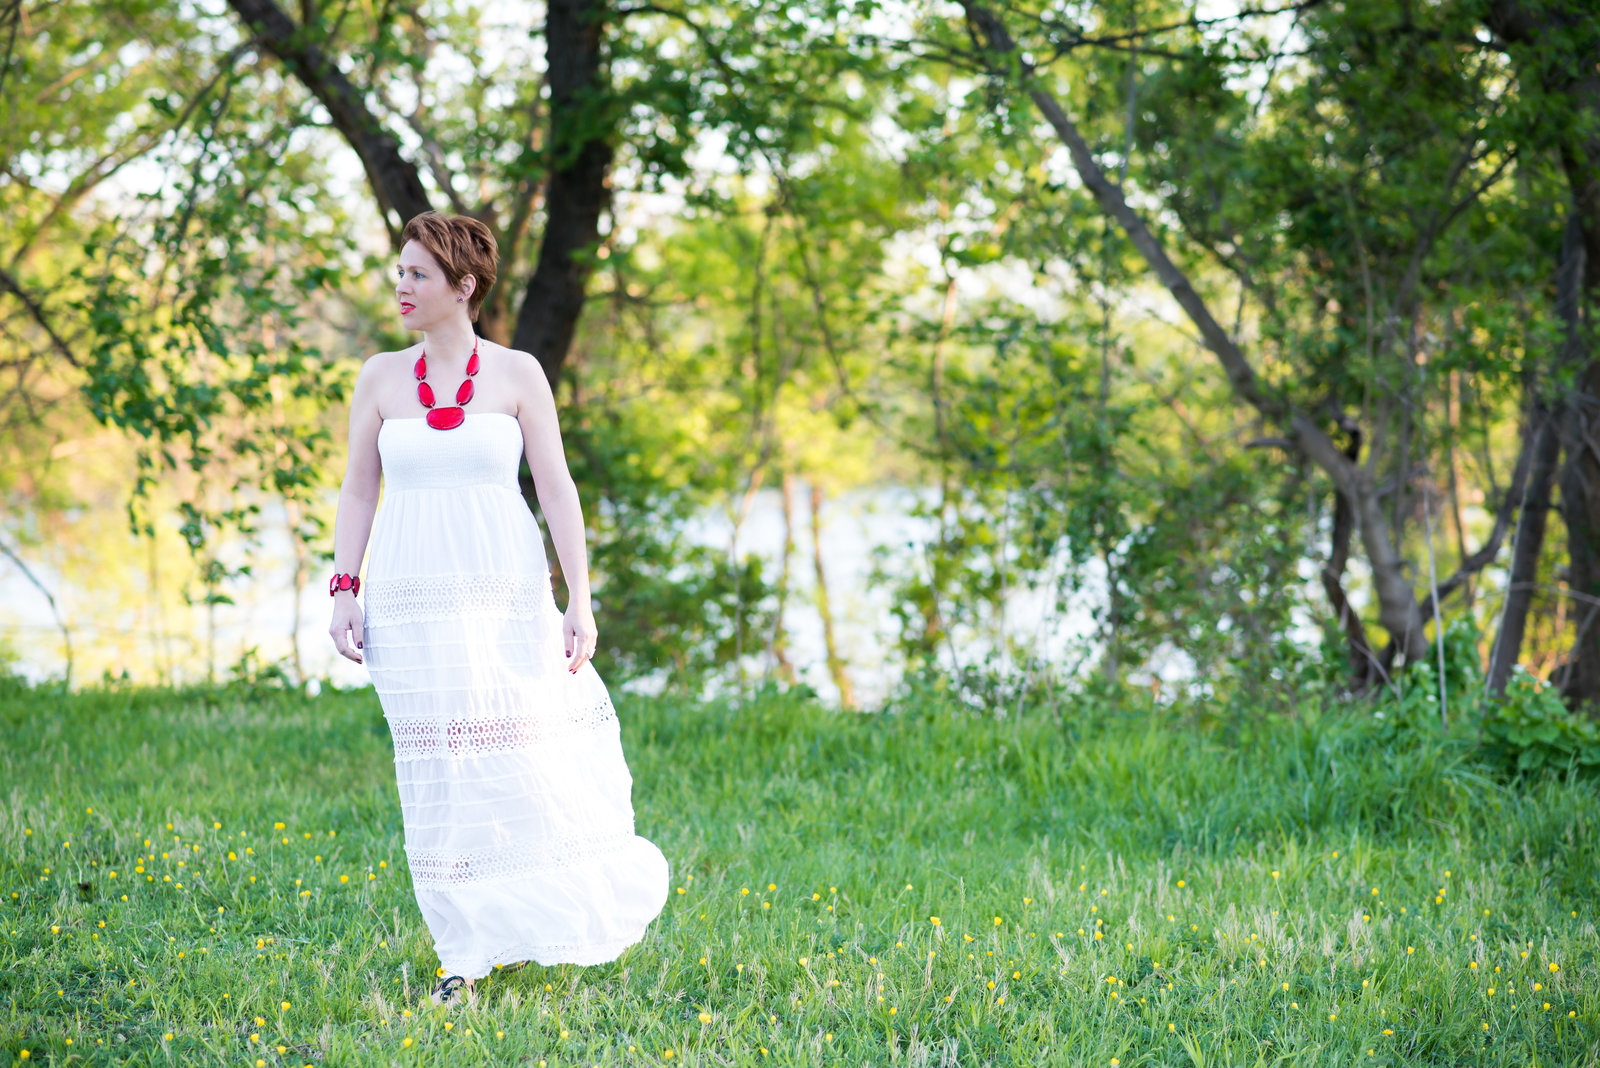 Stunning portrait photography in Richmond of a  women in white dress